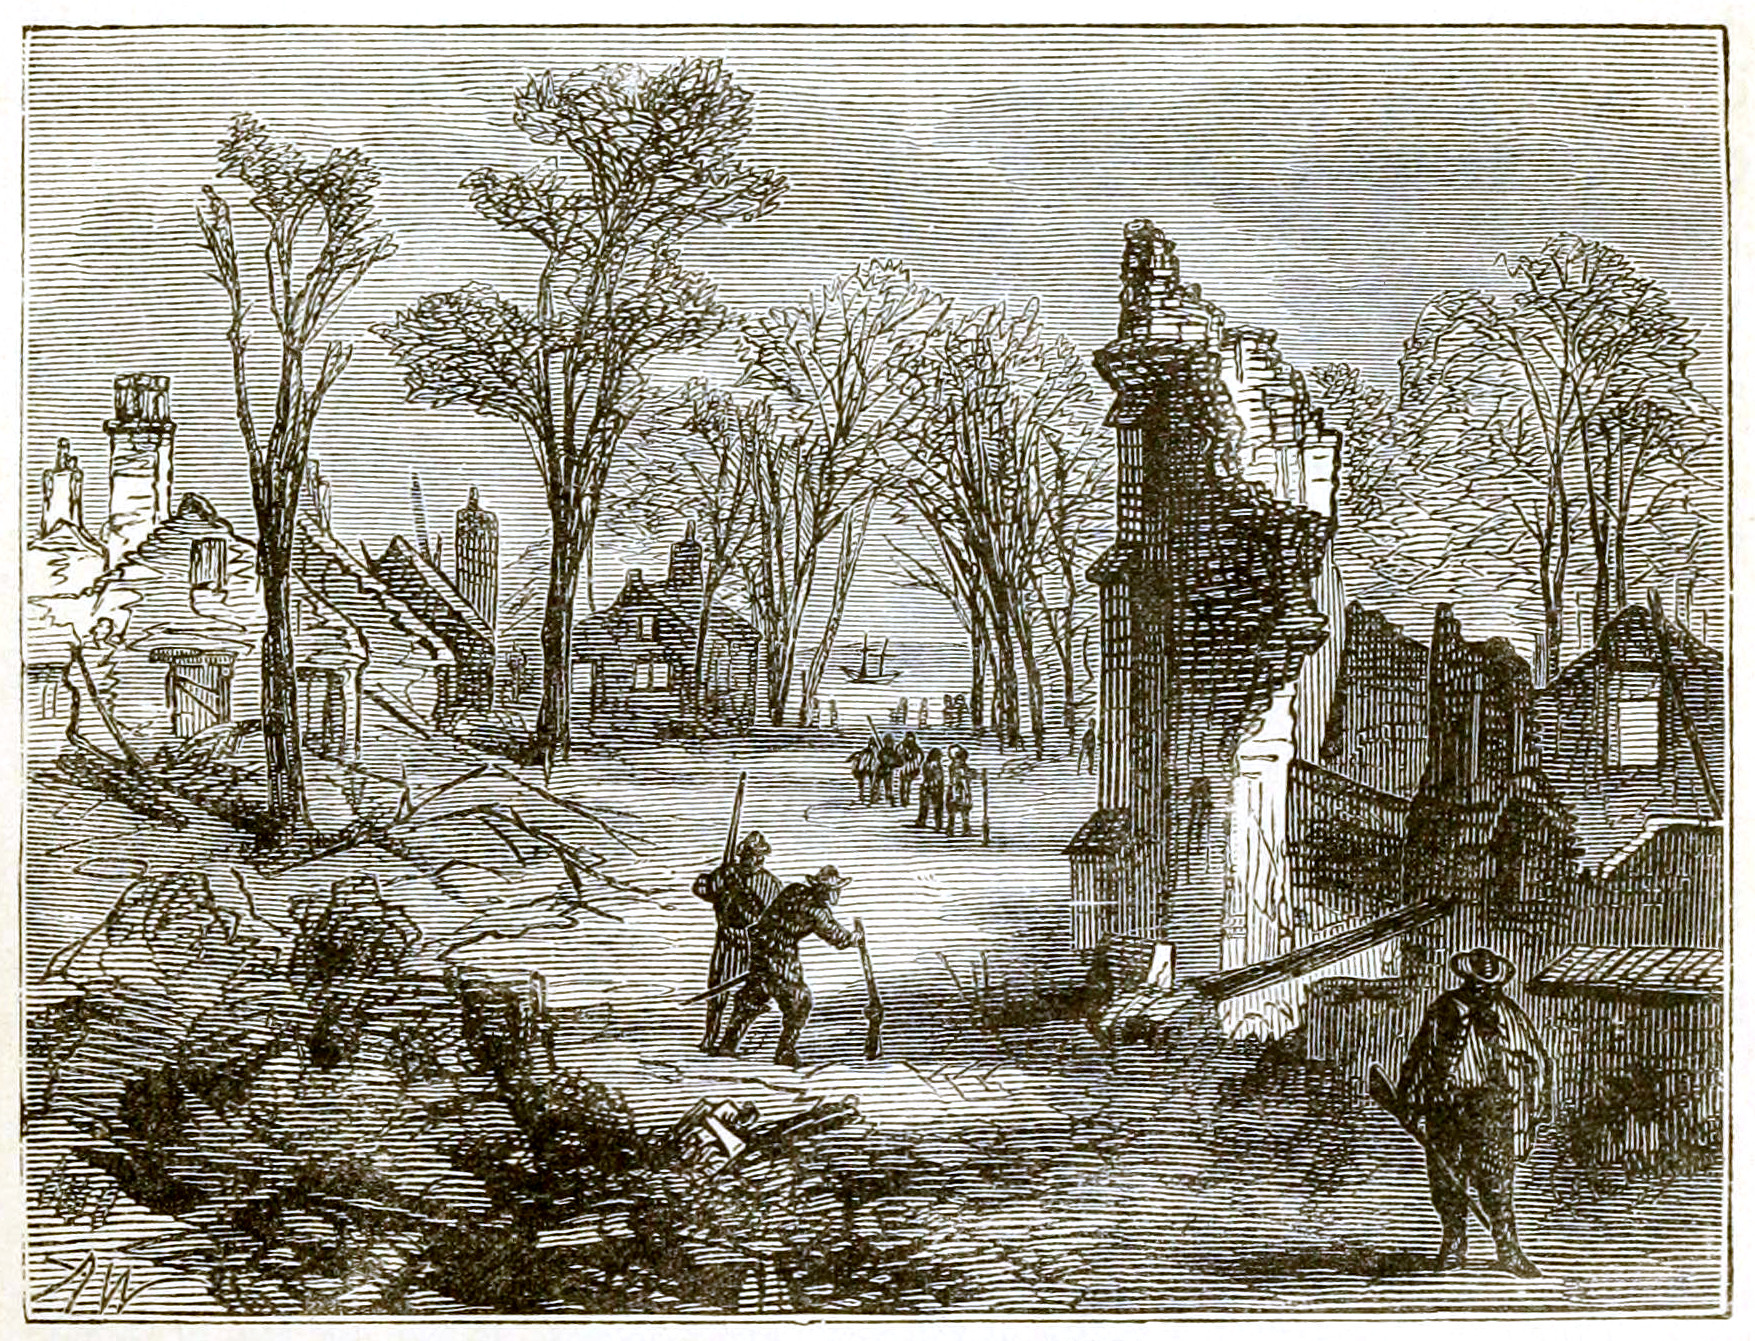 File:Illustration of Ruins of Jamestown 1676.jpg